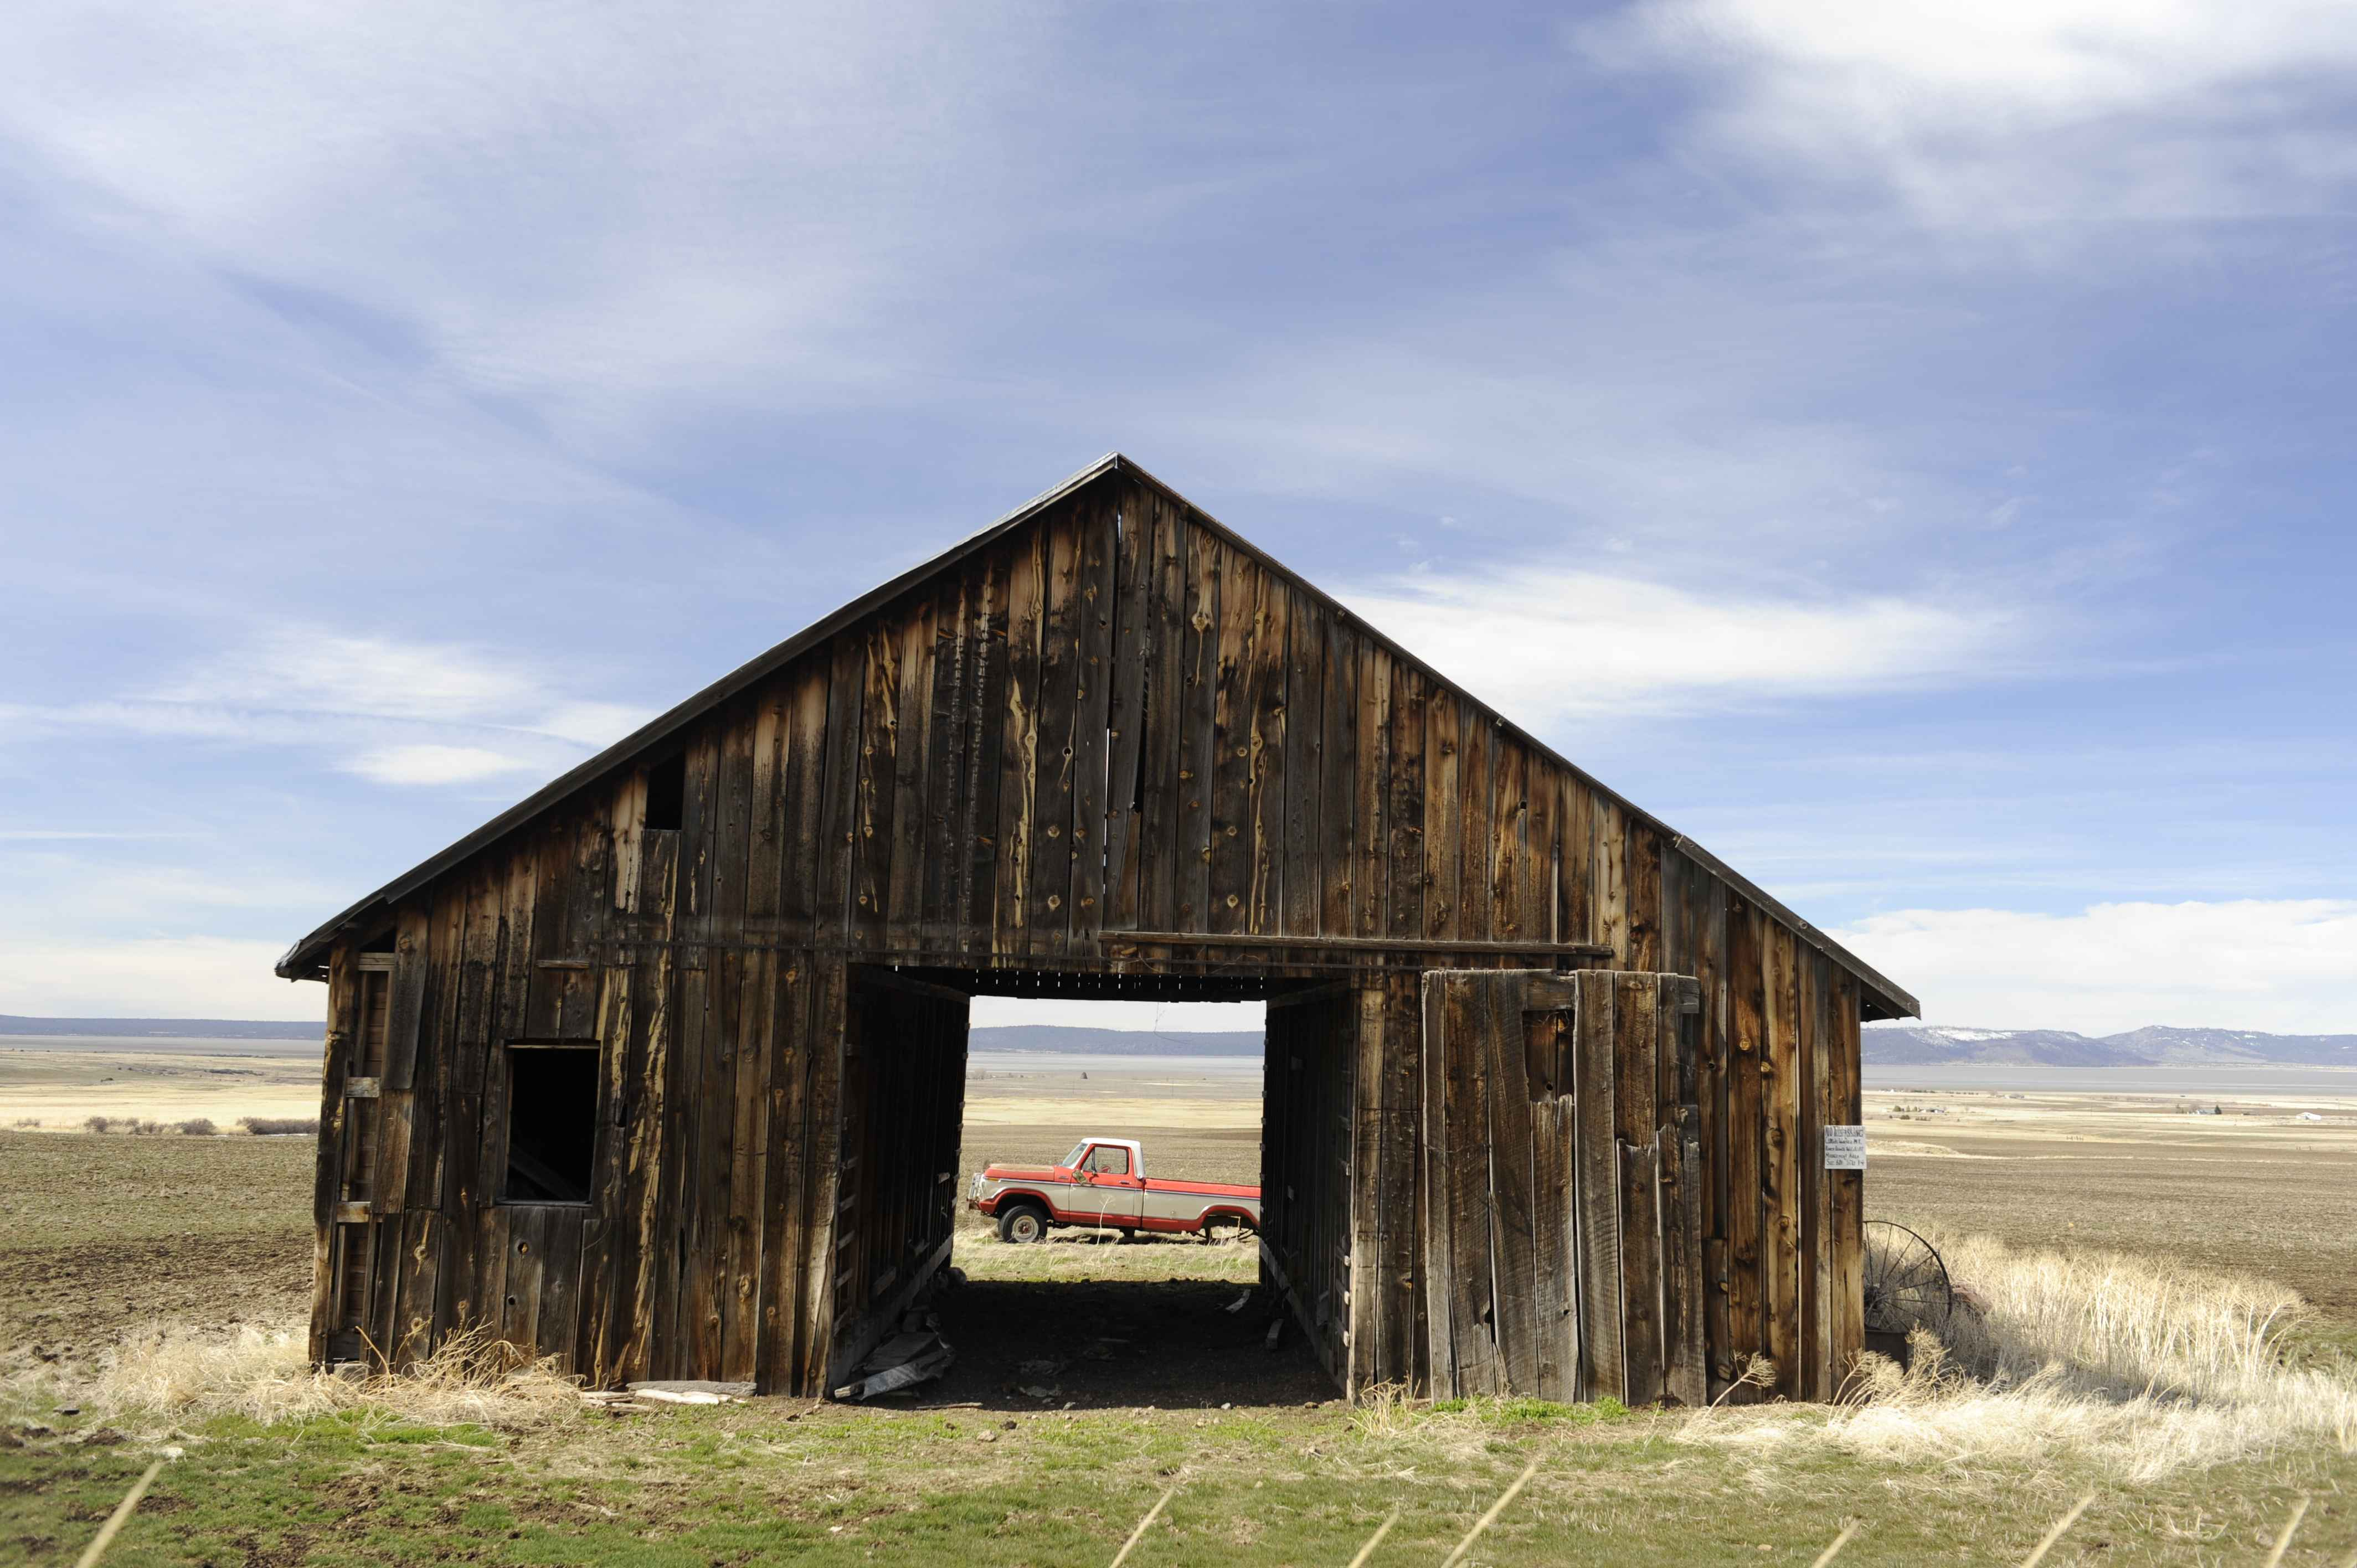 File:View of truck through an old barn.jpg